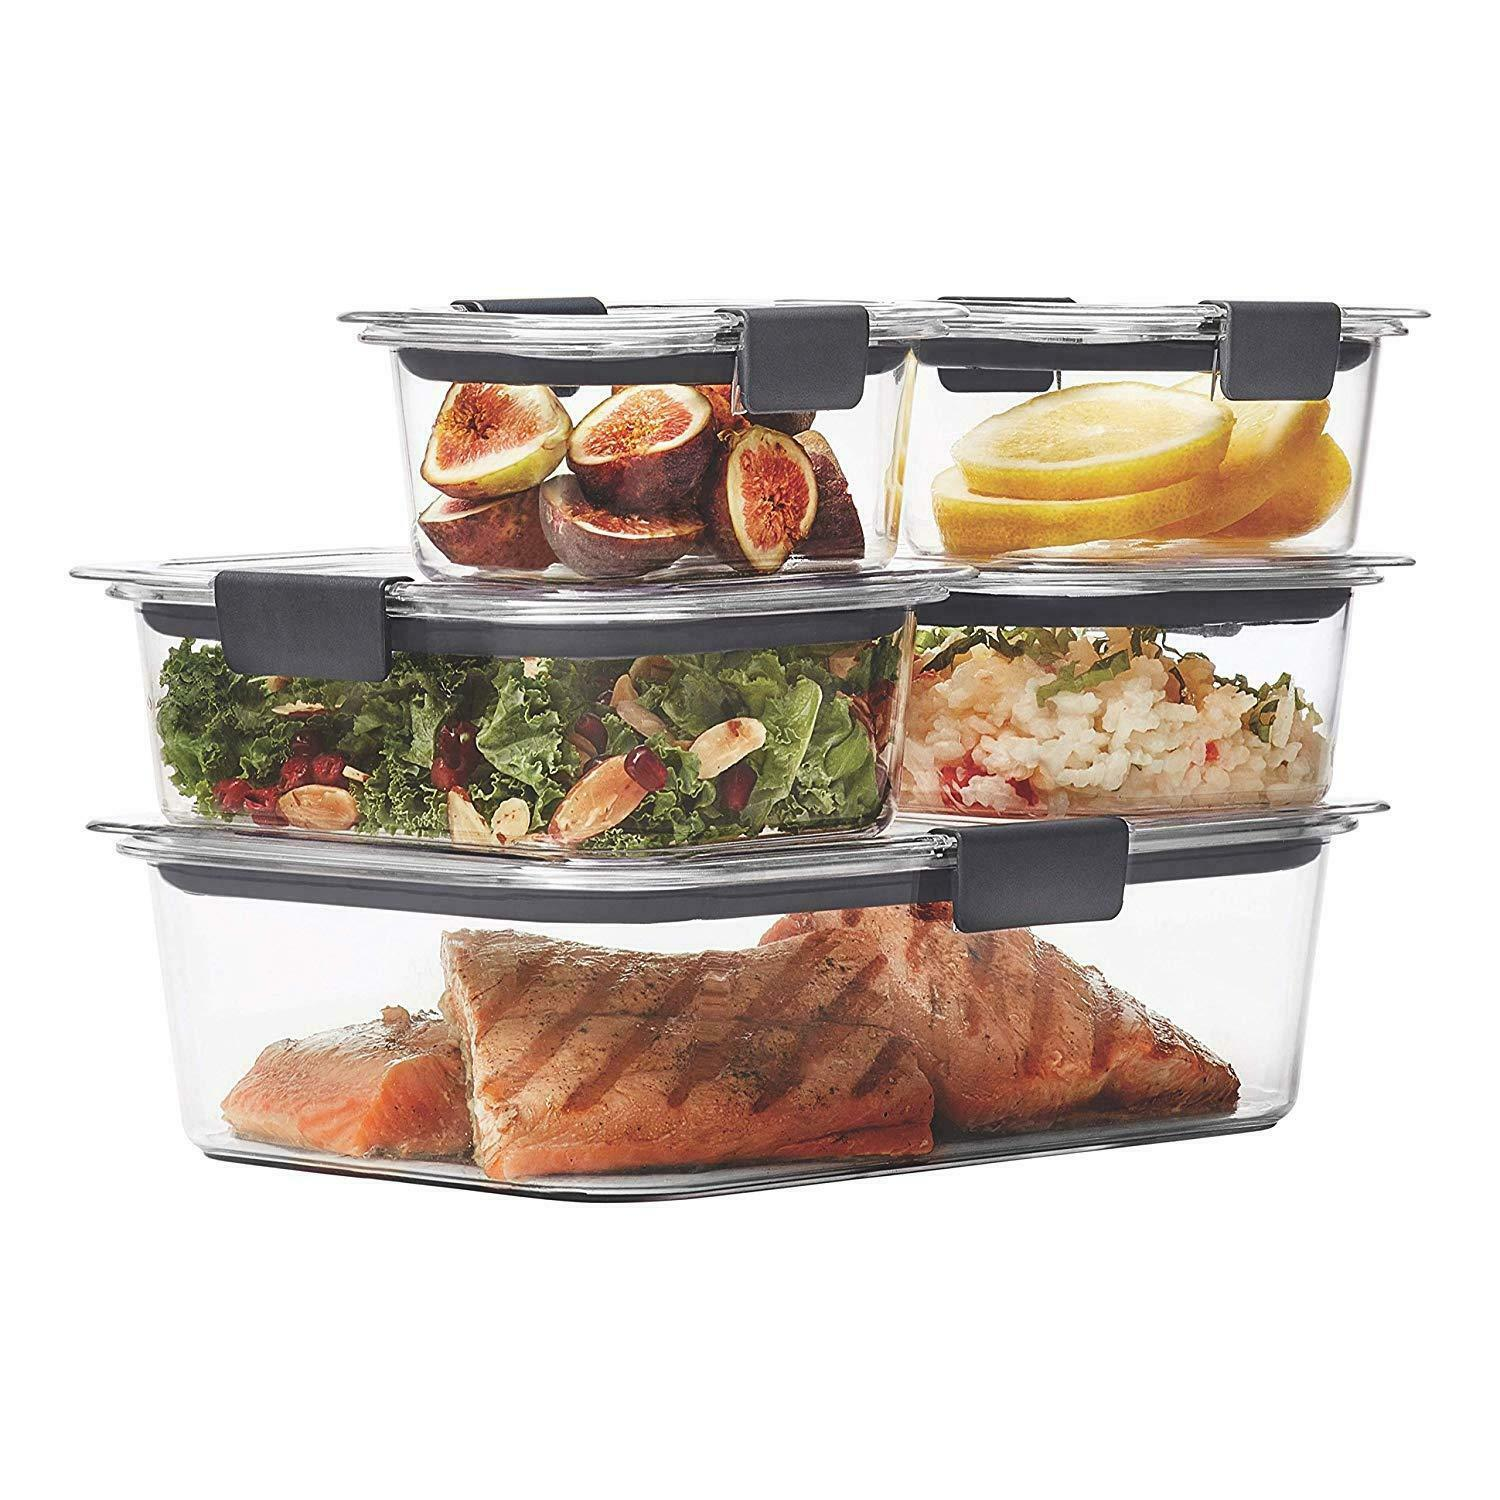 Rubbermaid Brilliance Food Storage Containers Airtight Lids BPA Free Set Of 5 1